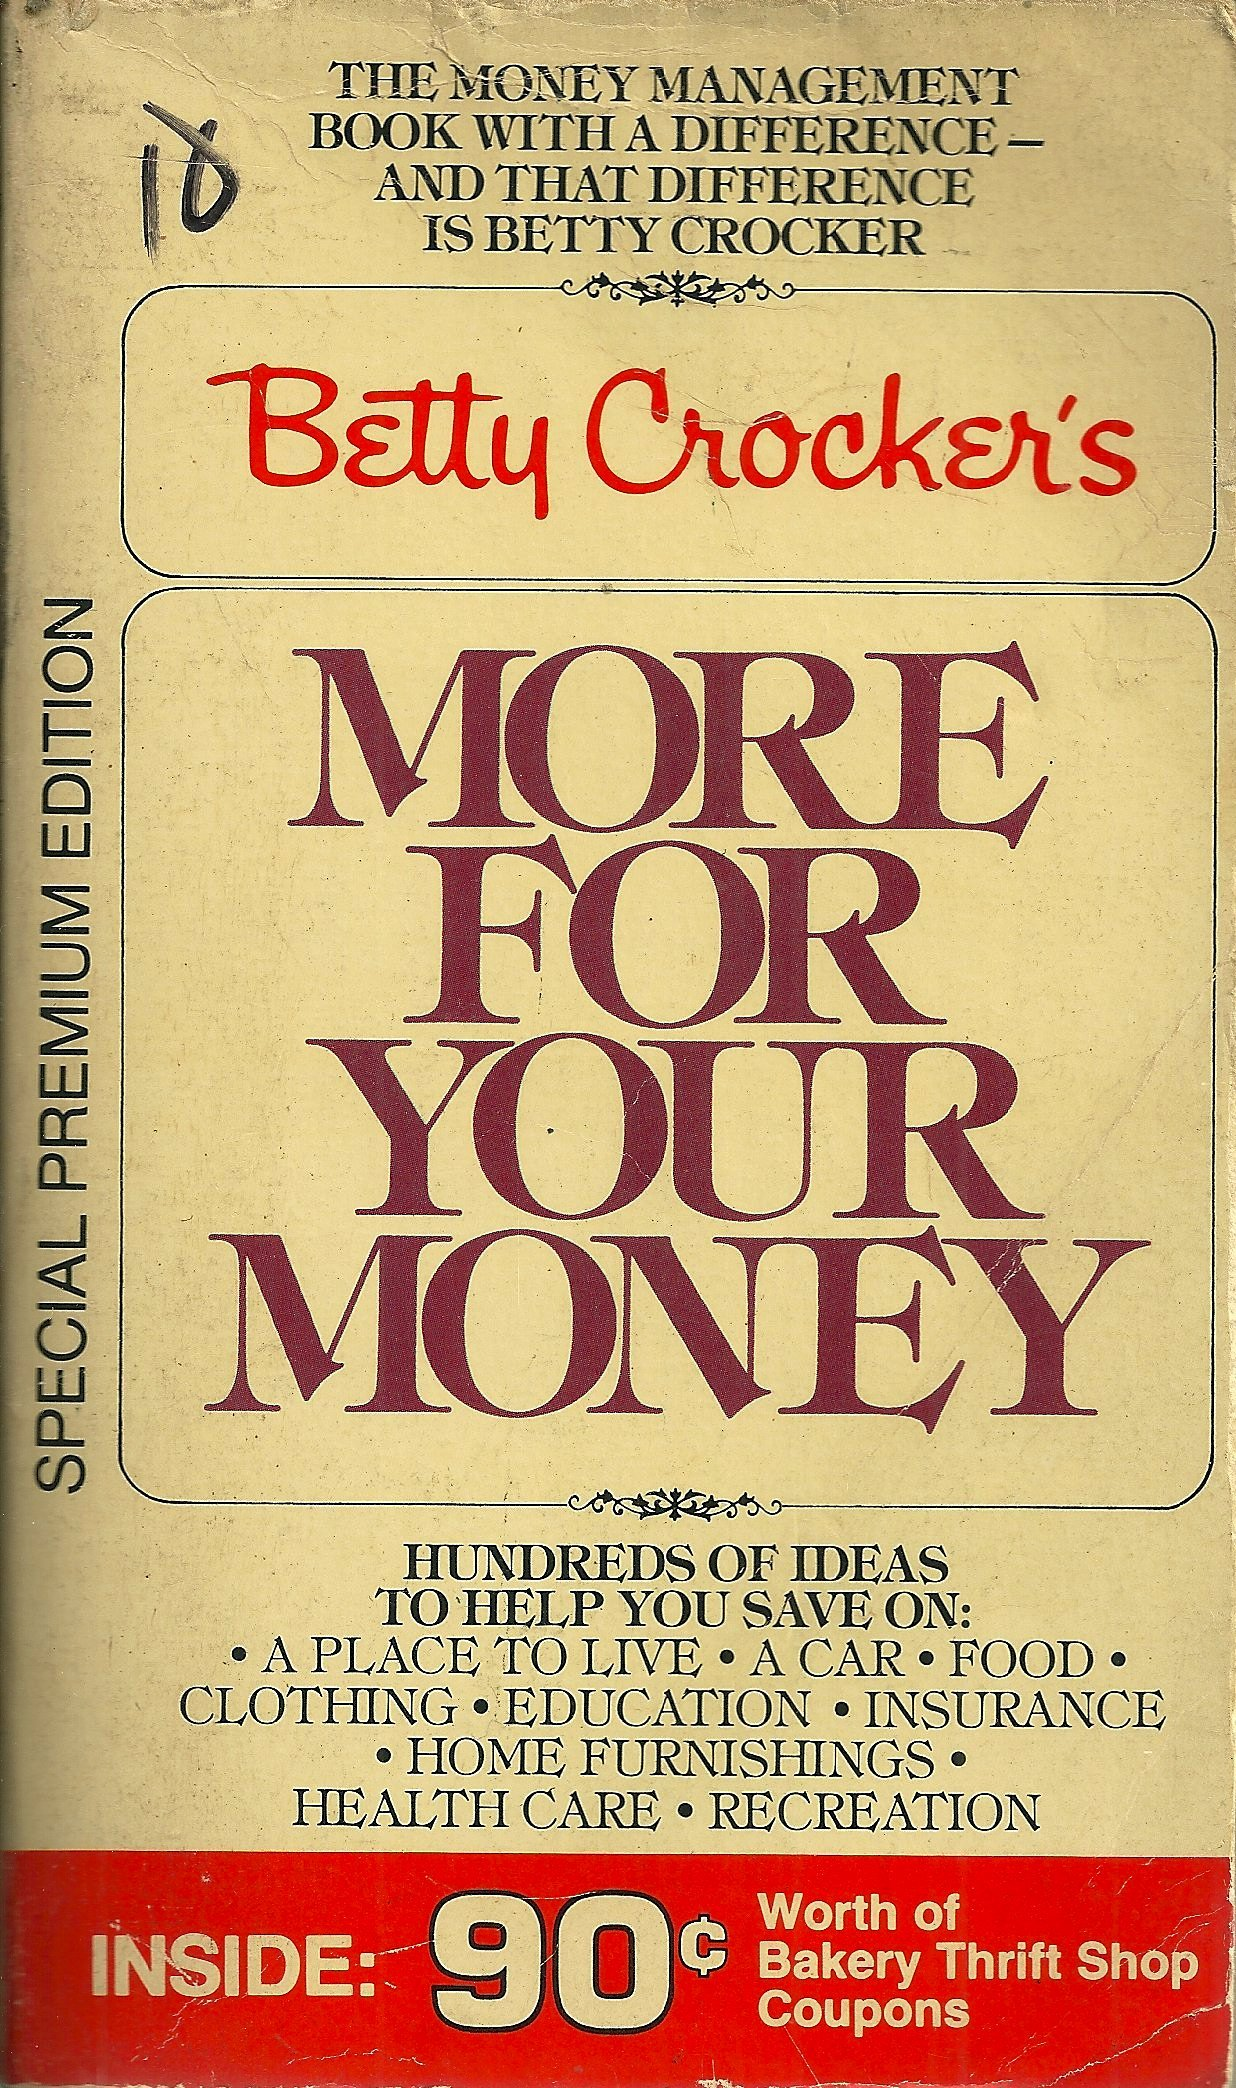 Betty Crocker's more for your money: Hundreds of ideas to help you save on: a place to live, a car, food, clothing, education, insurance, home furnishings, health care, recreation